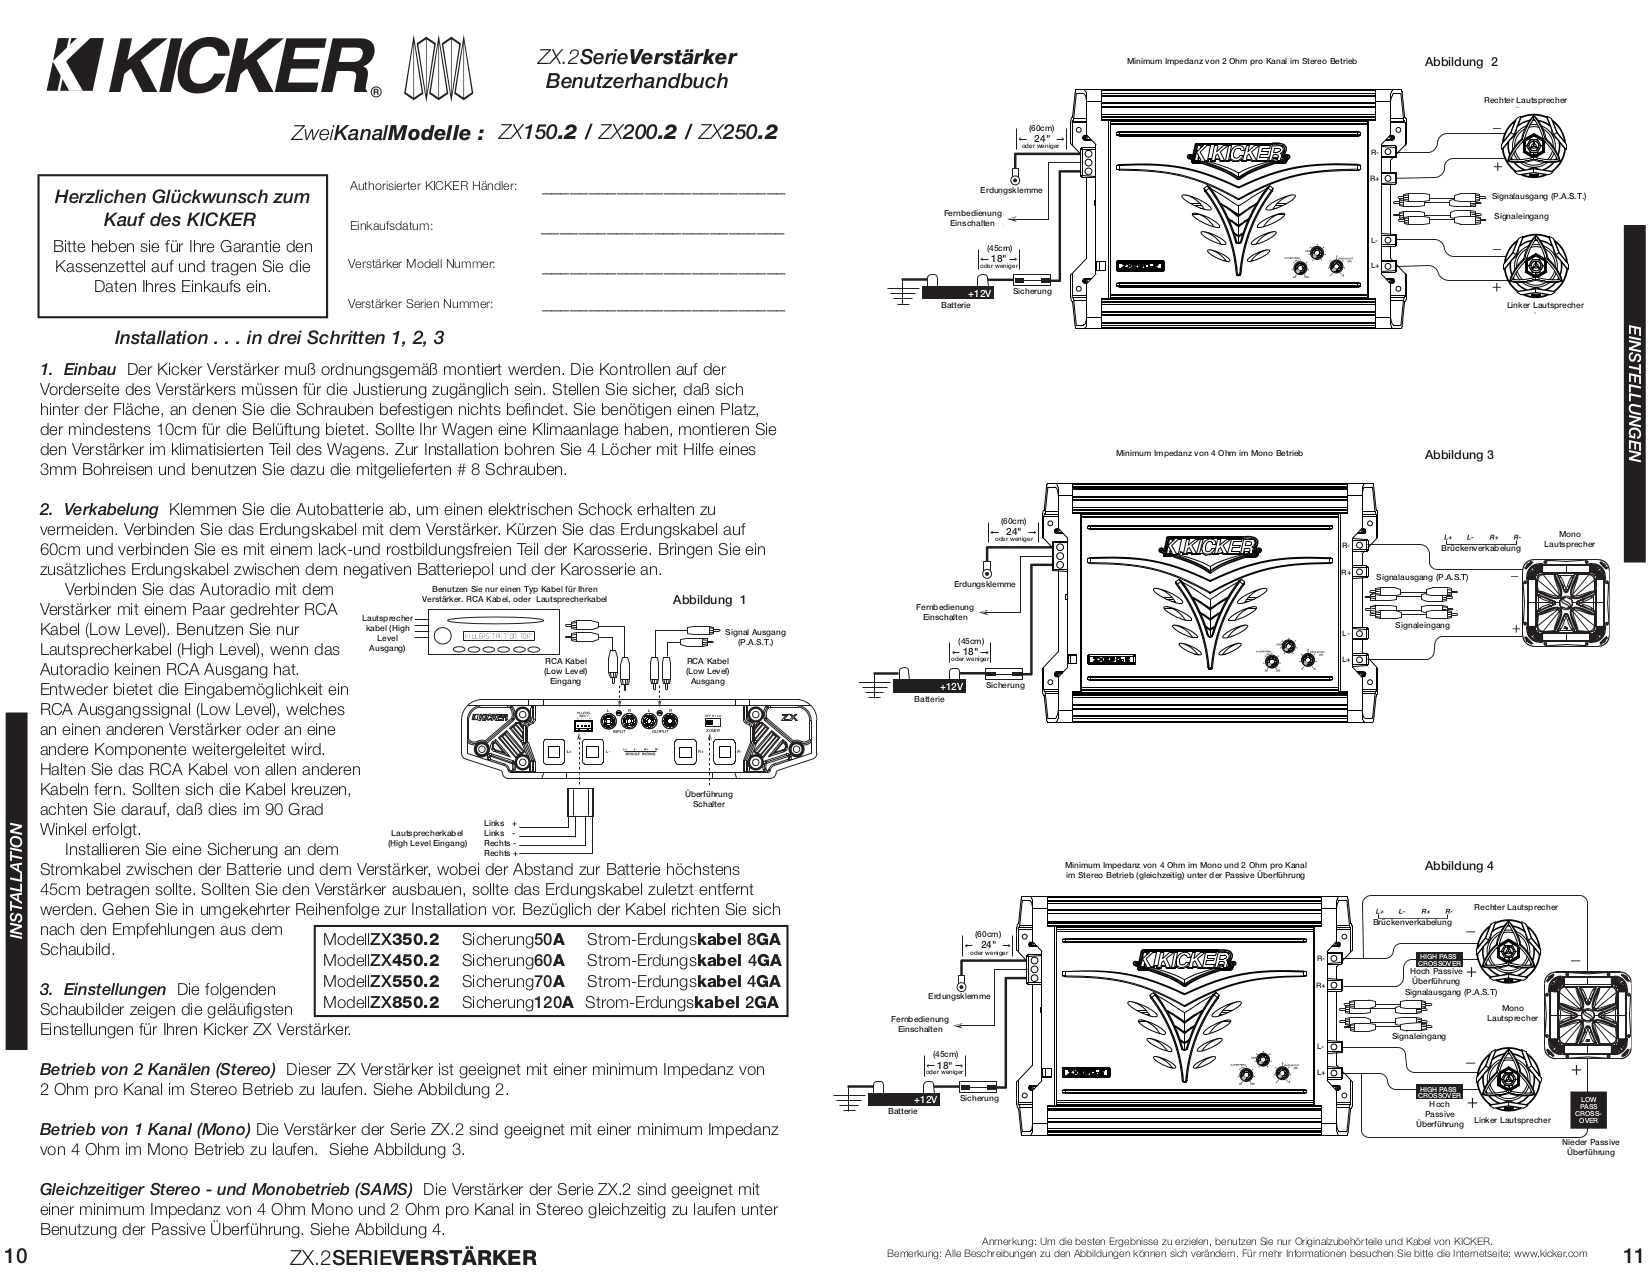 Lovely Kicker Dx 250 1 Wiring Diagram Images - Electrical and ...